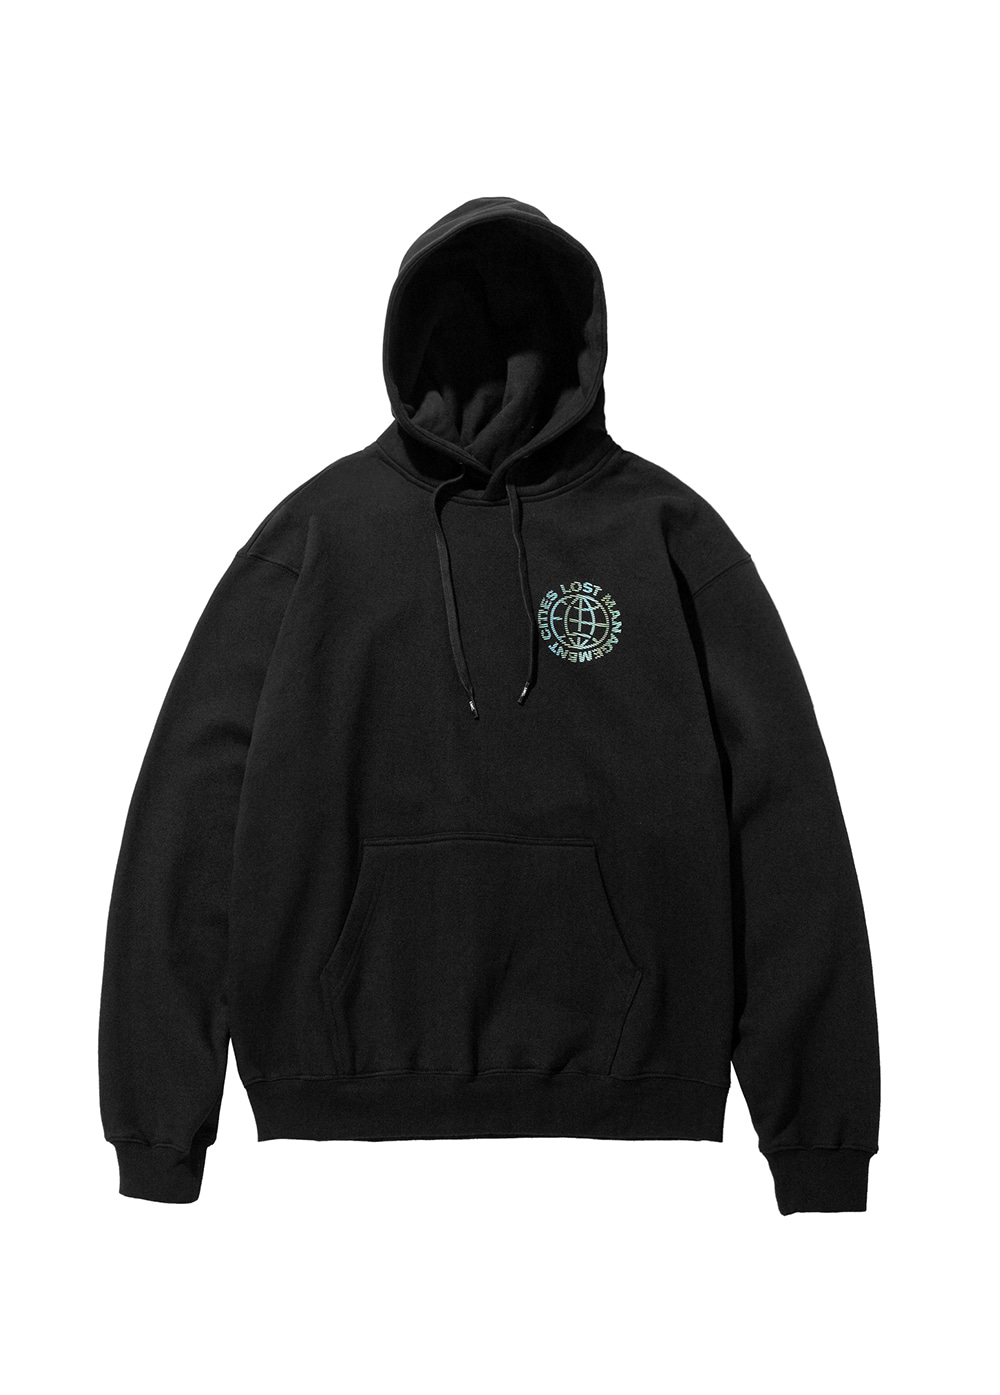 LMC WAVED WHEEL HOODIE black